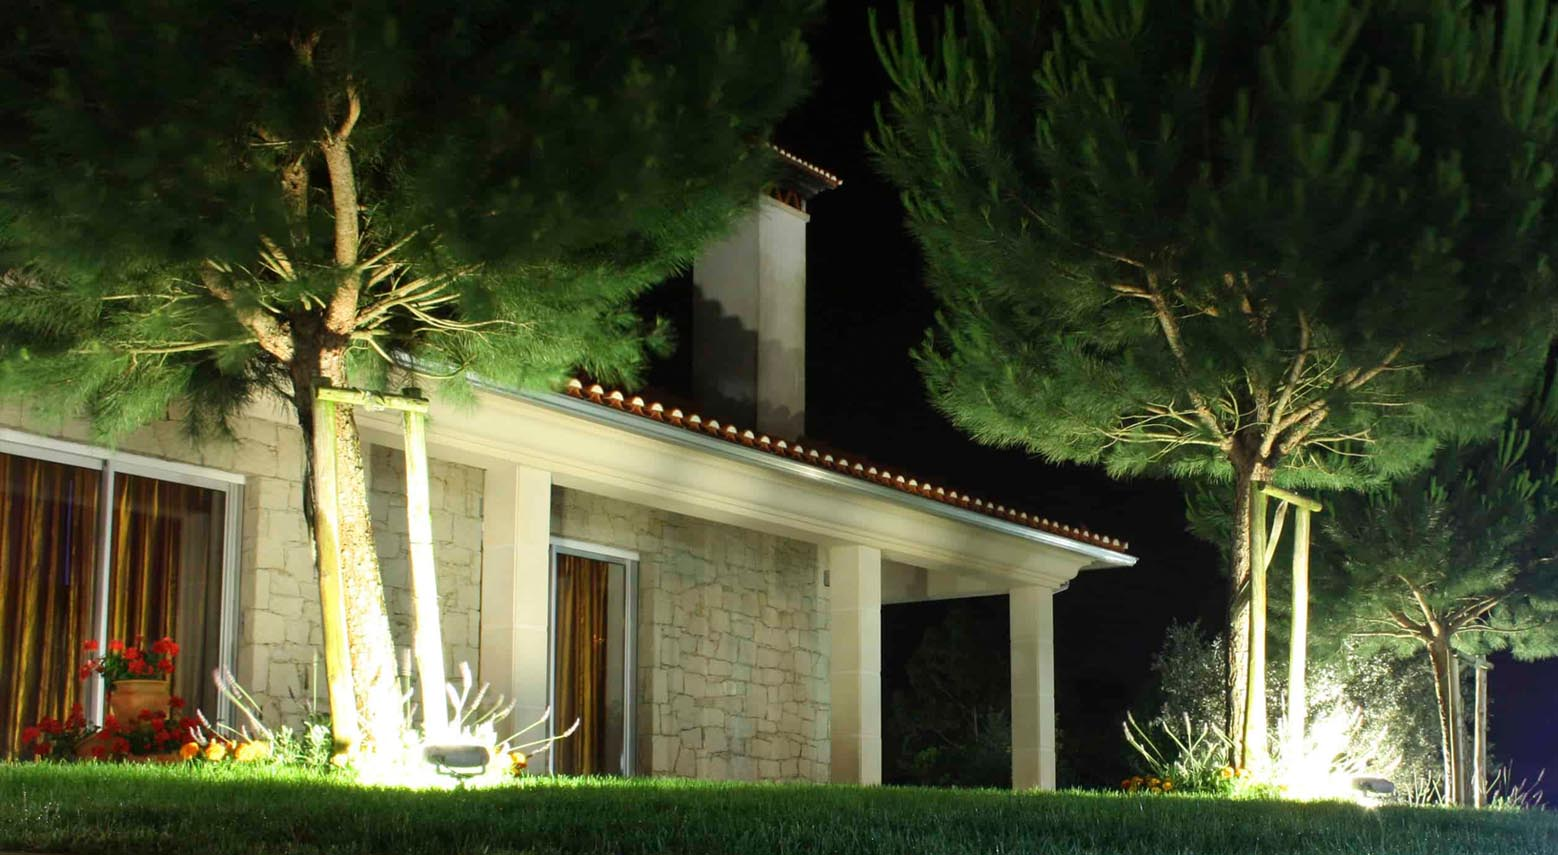 How Much Can You Save by Switching Outdoor Lighting to Solar?